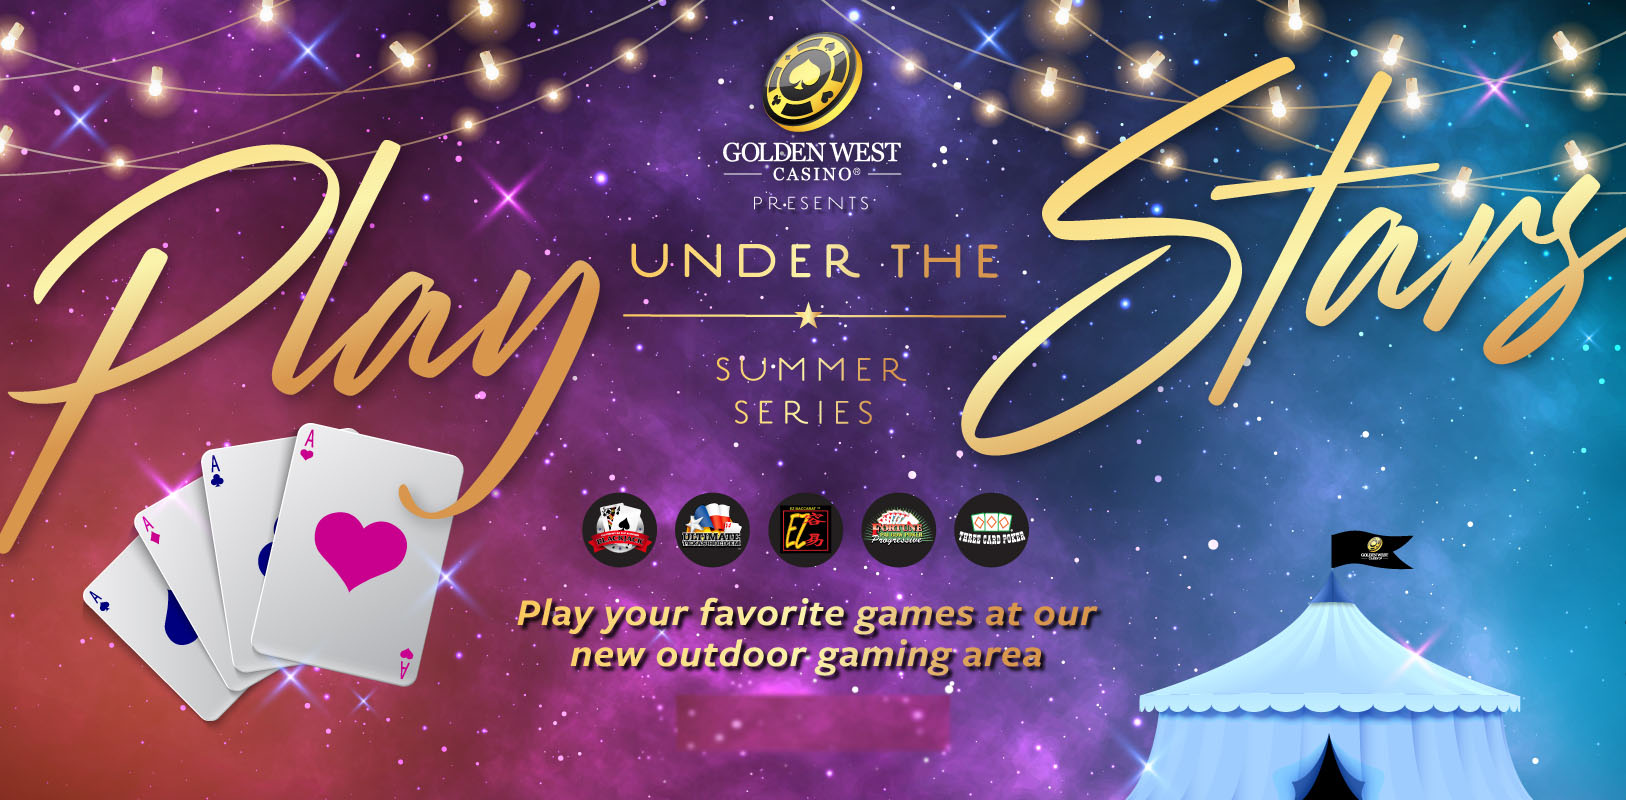 Golden West Casino Presents: Play Under the Stars – Summer Series